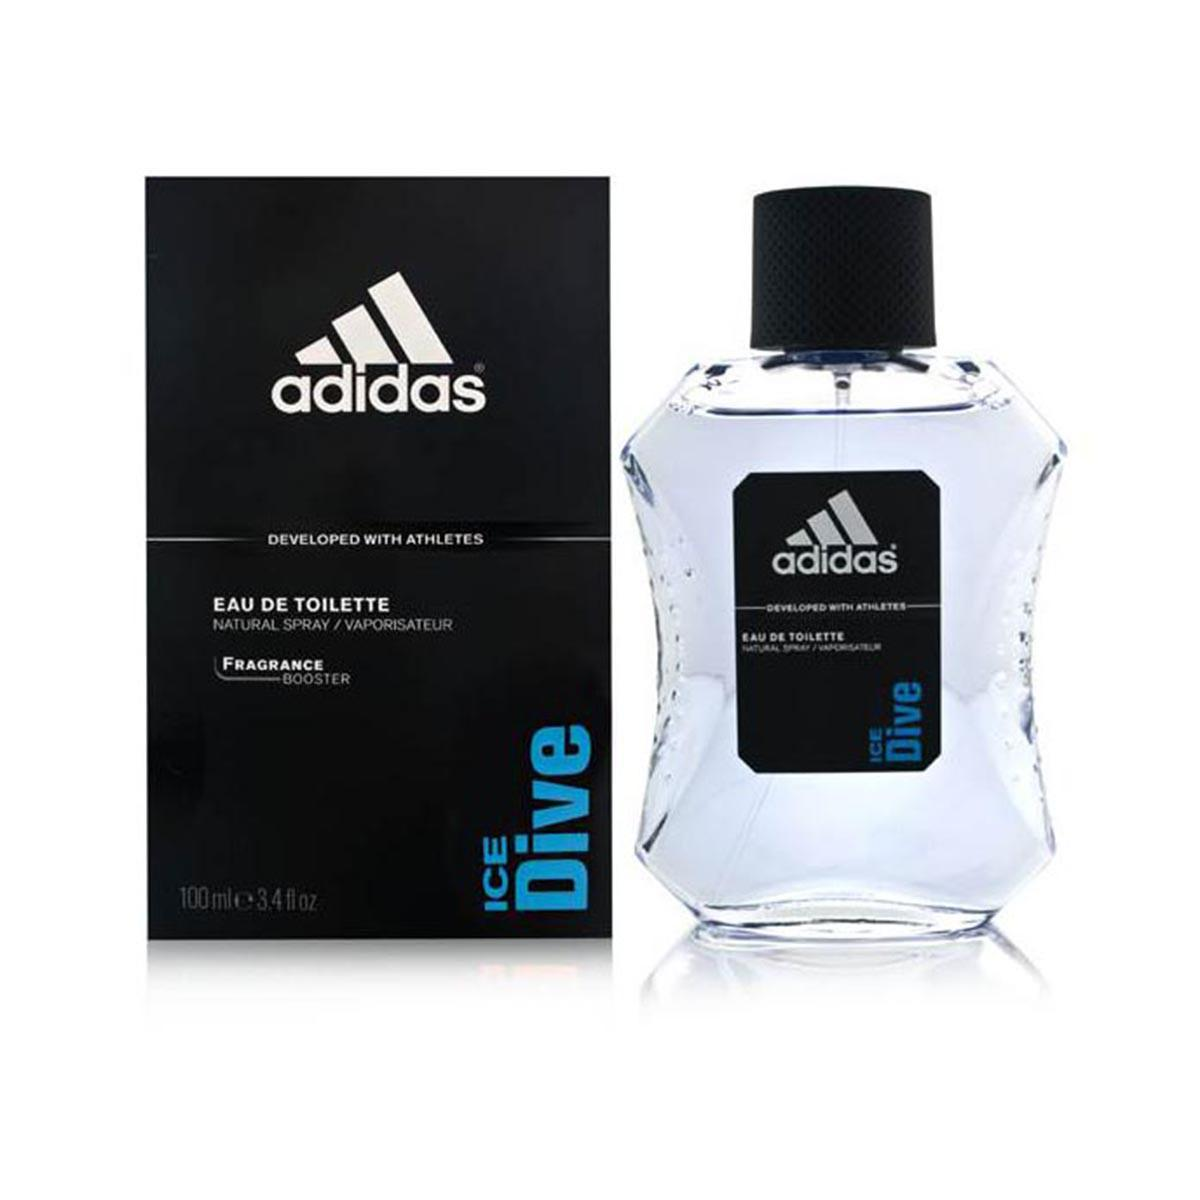 Consumo Adidas Ice Dive Eau De Toilette 100 ml